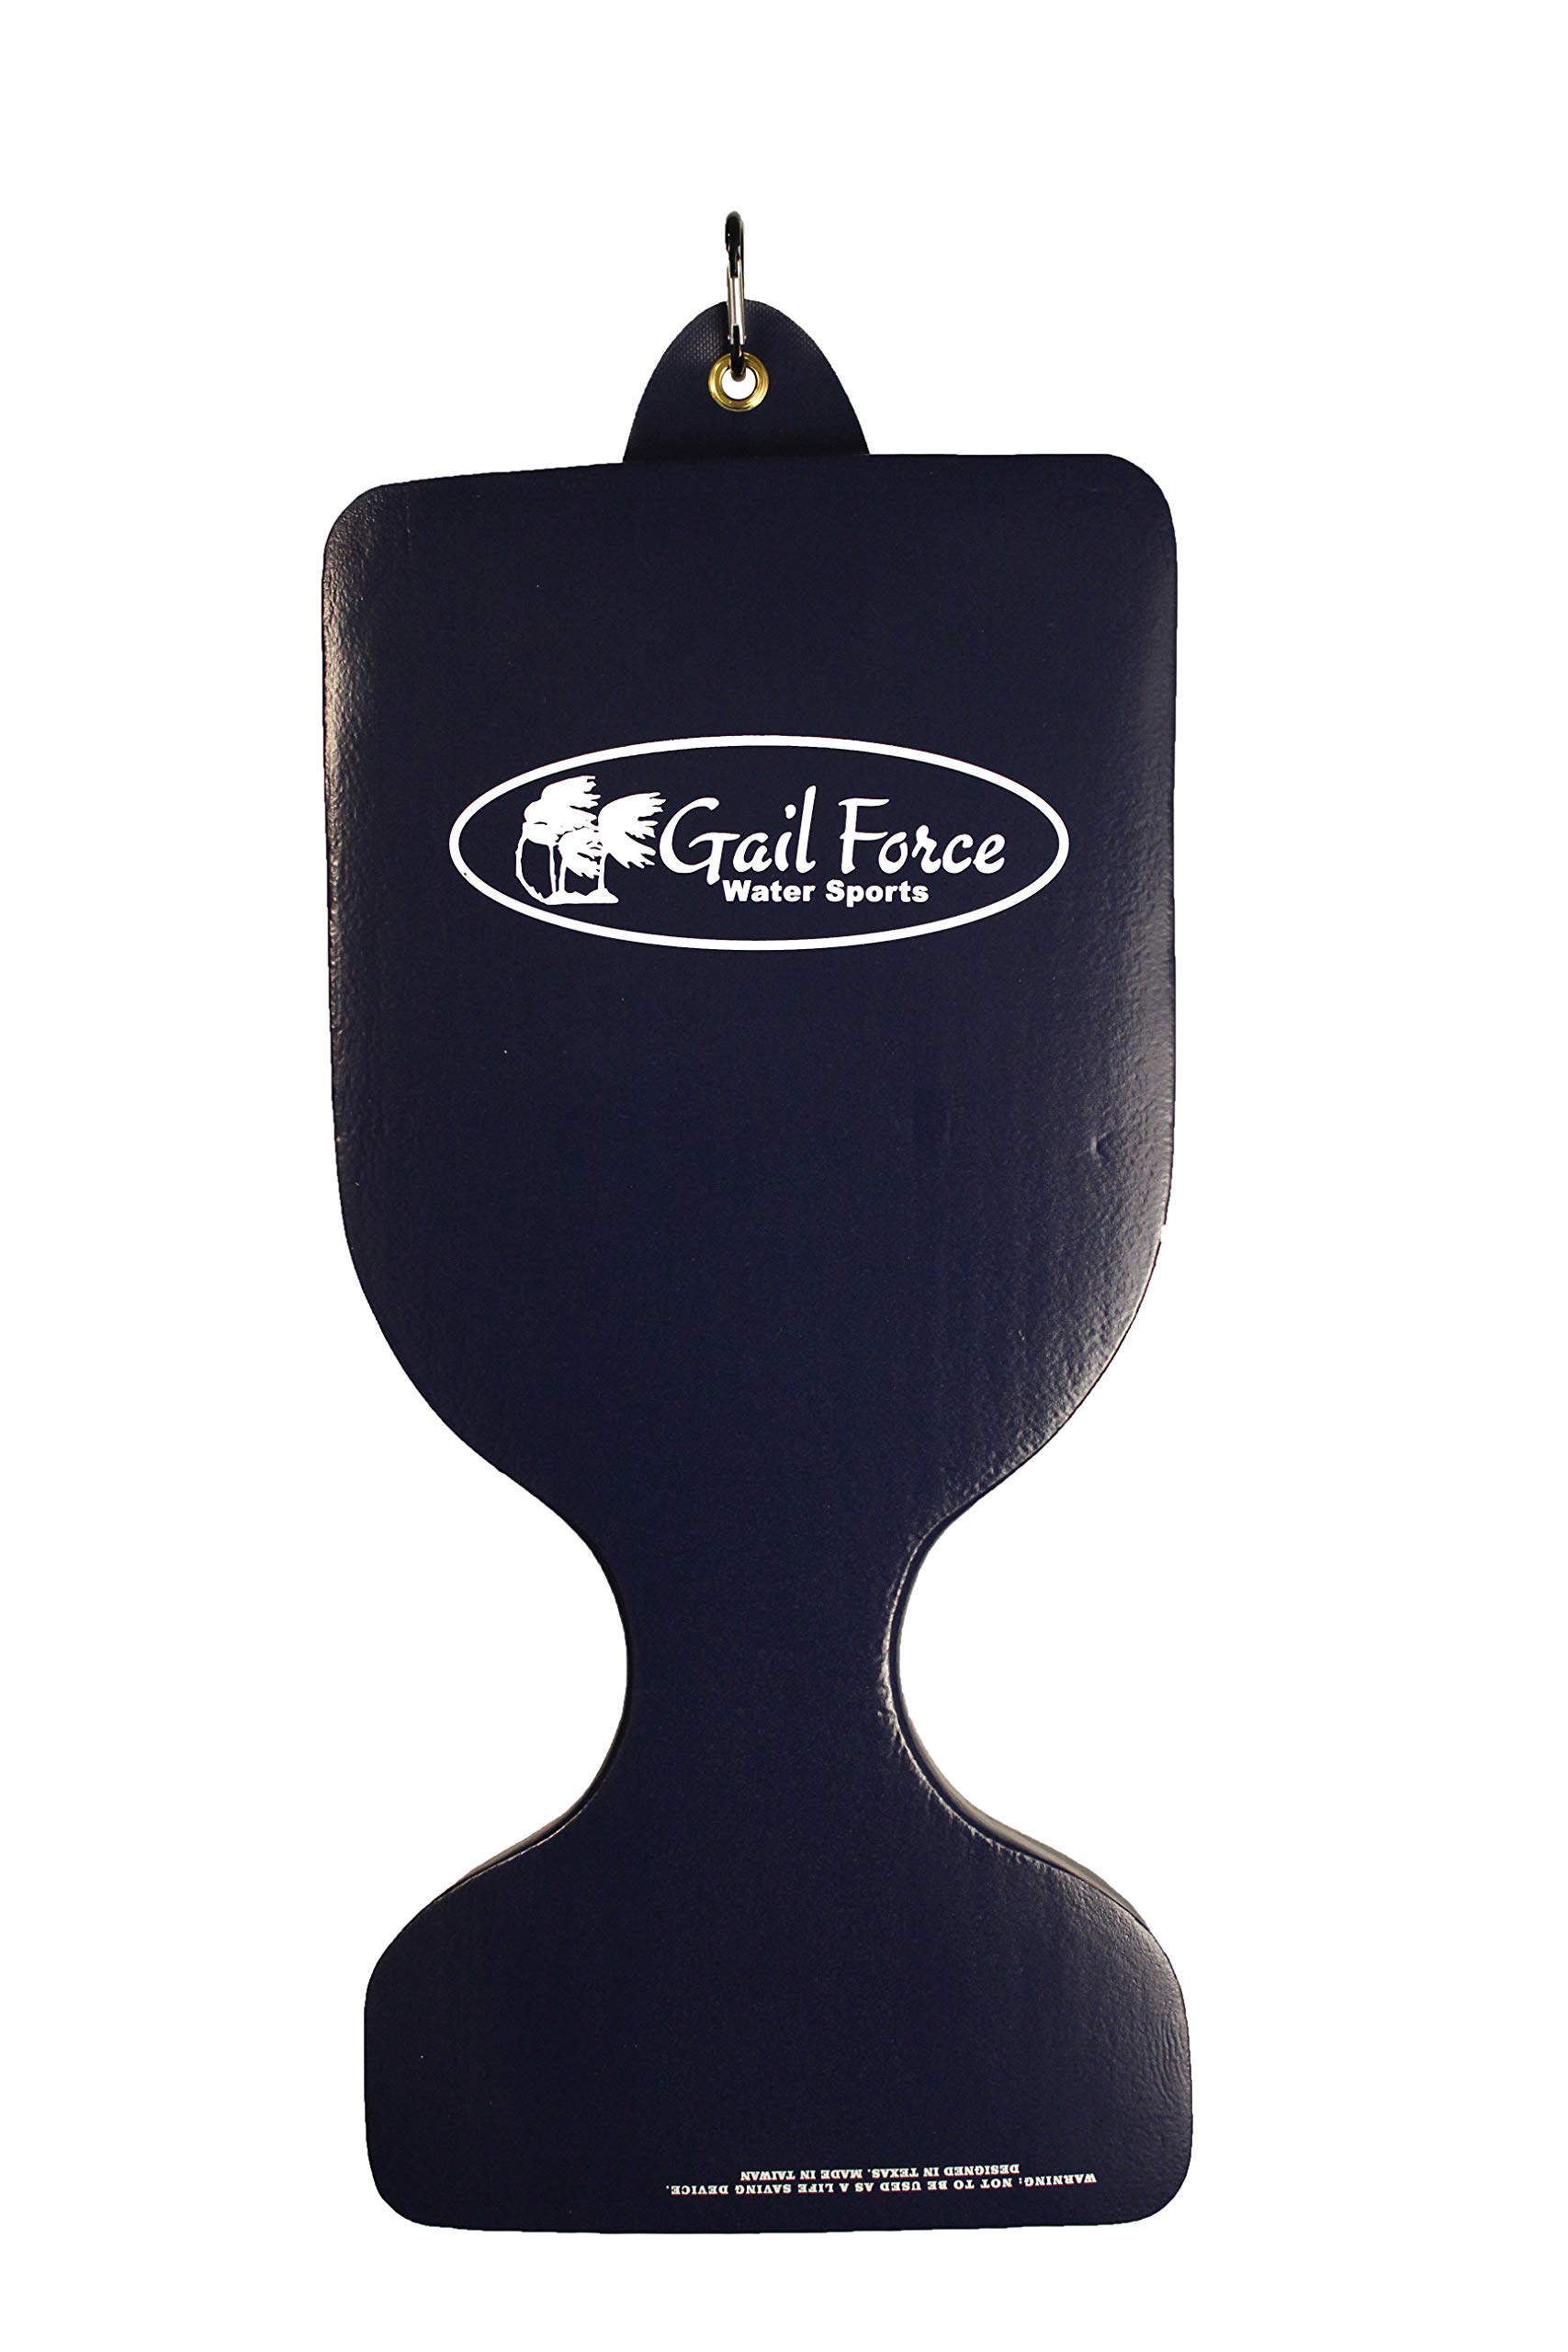 Gail Force Water Sports Saddle Float - Navy by Gail Force Water Sports